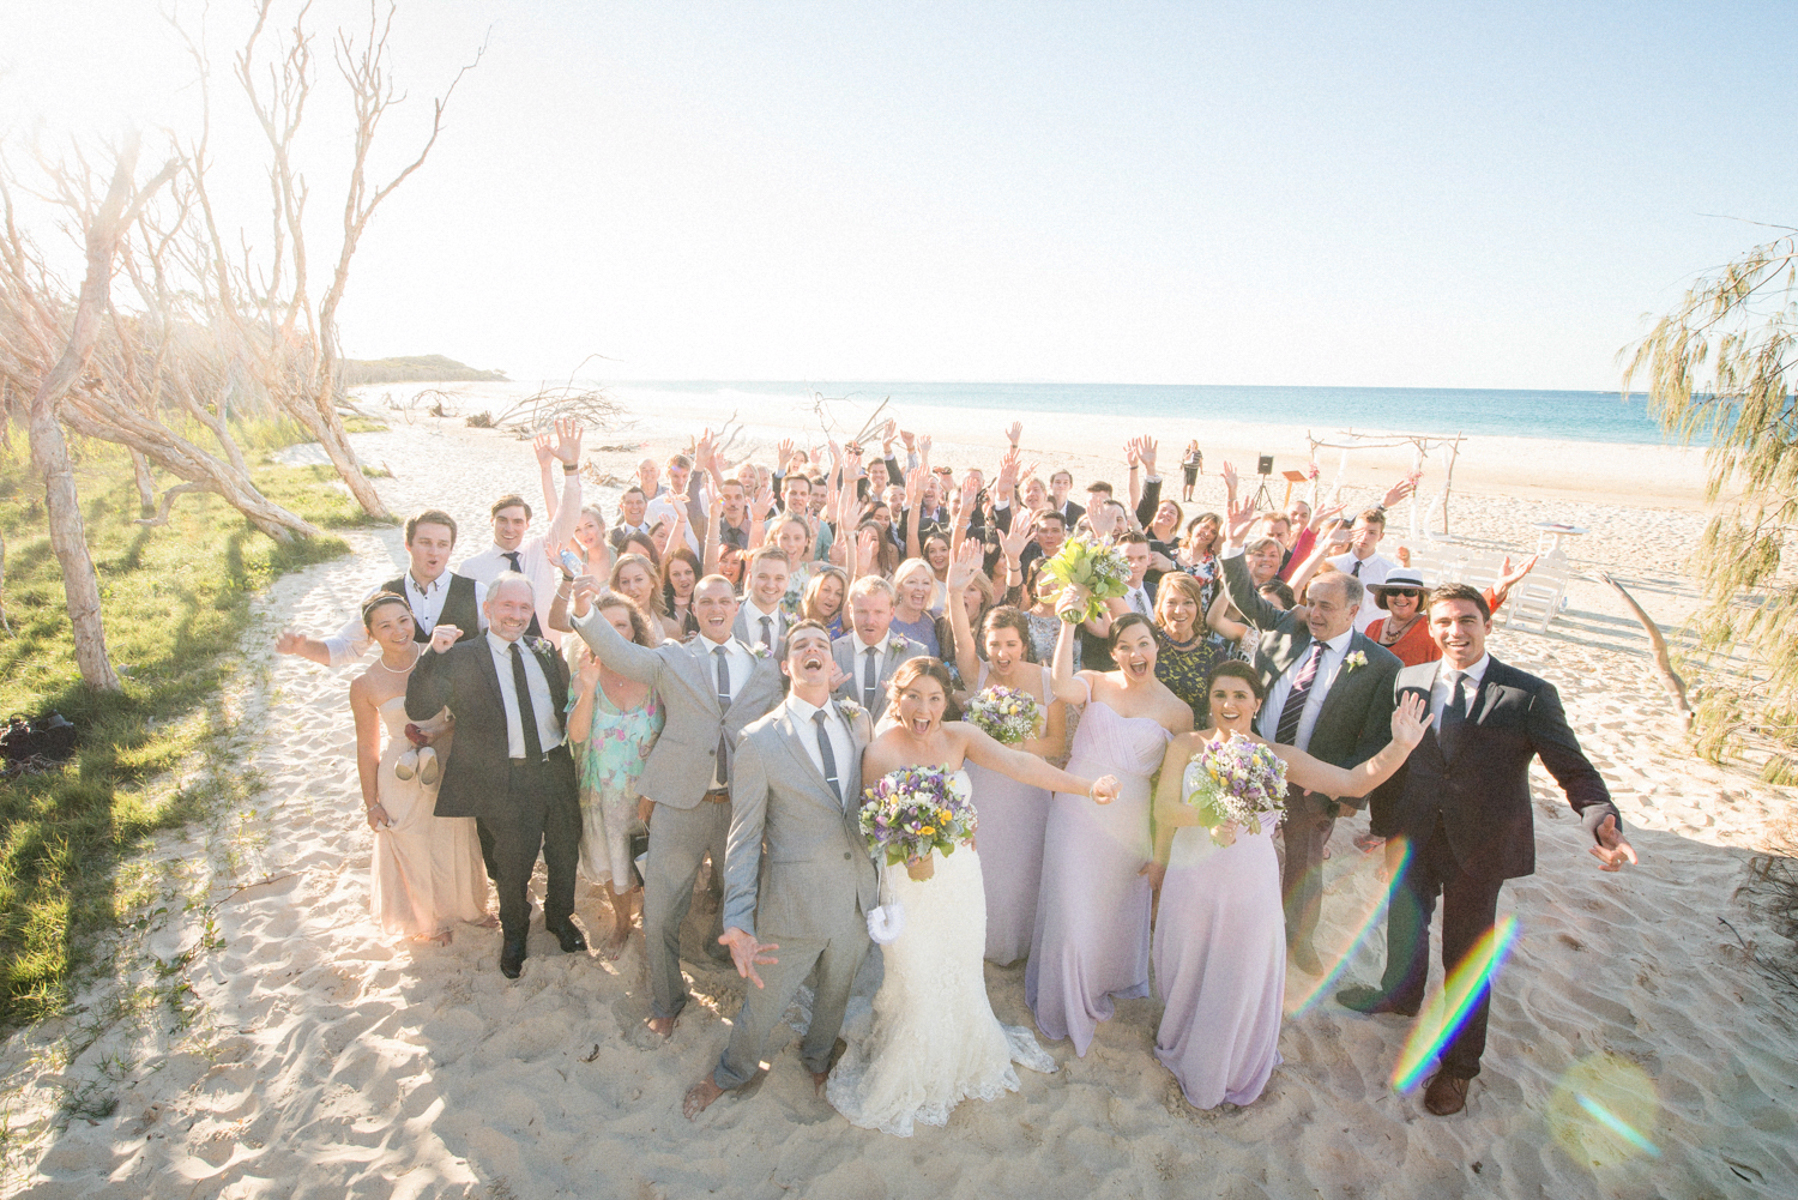 group photo of wedding guests on the beach